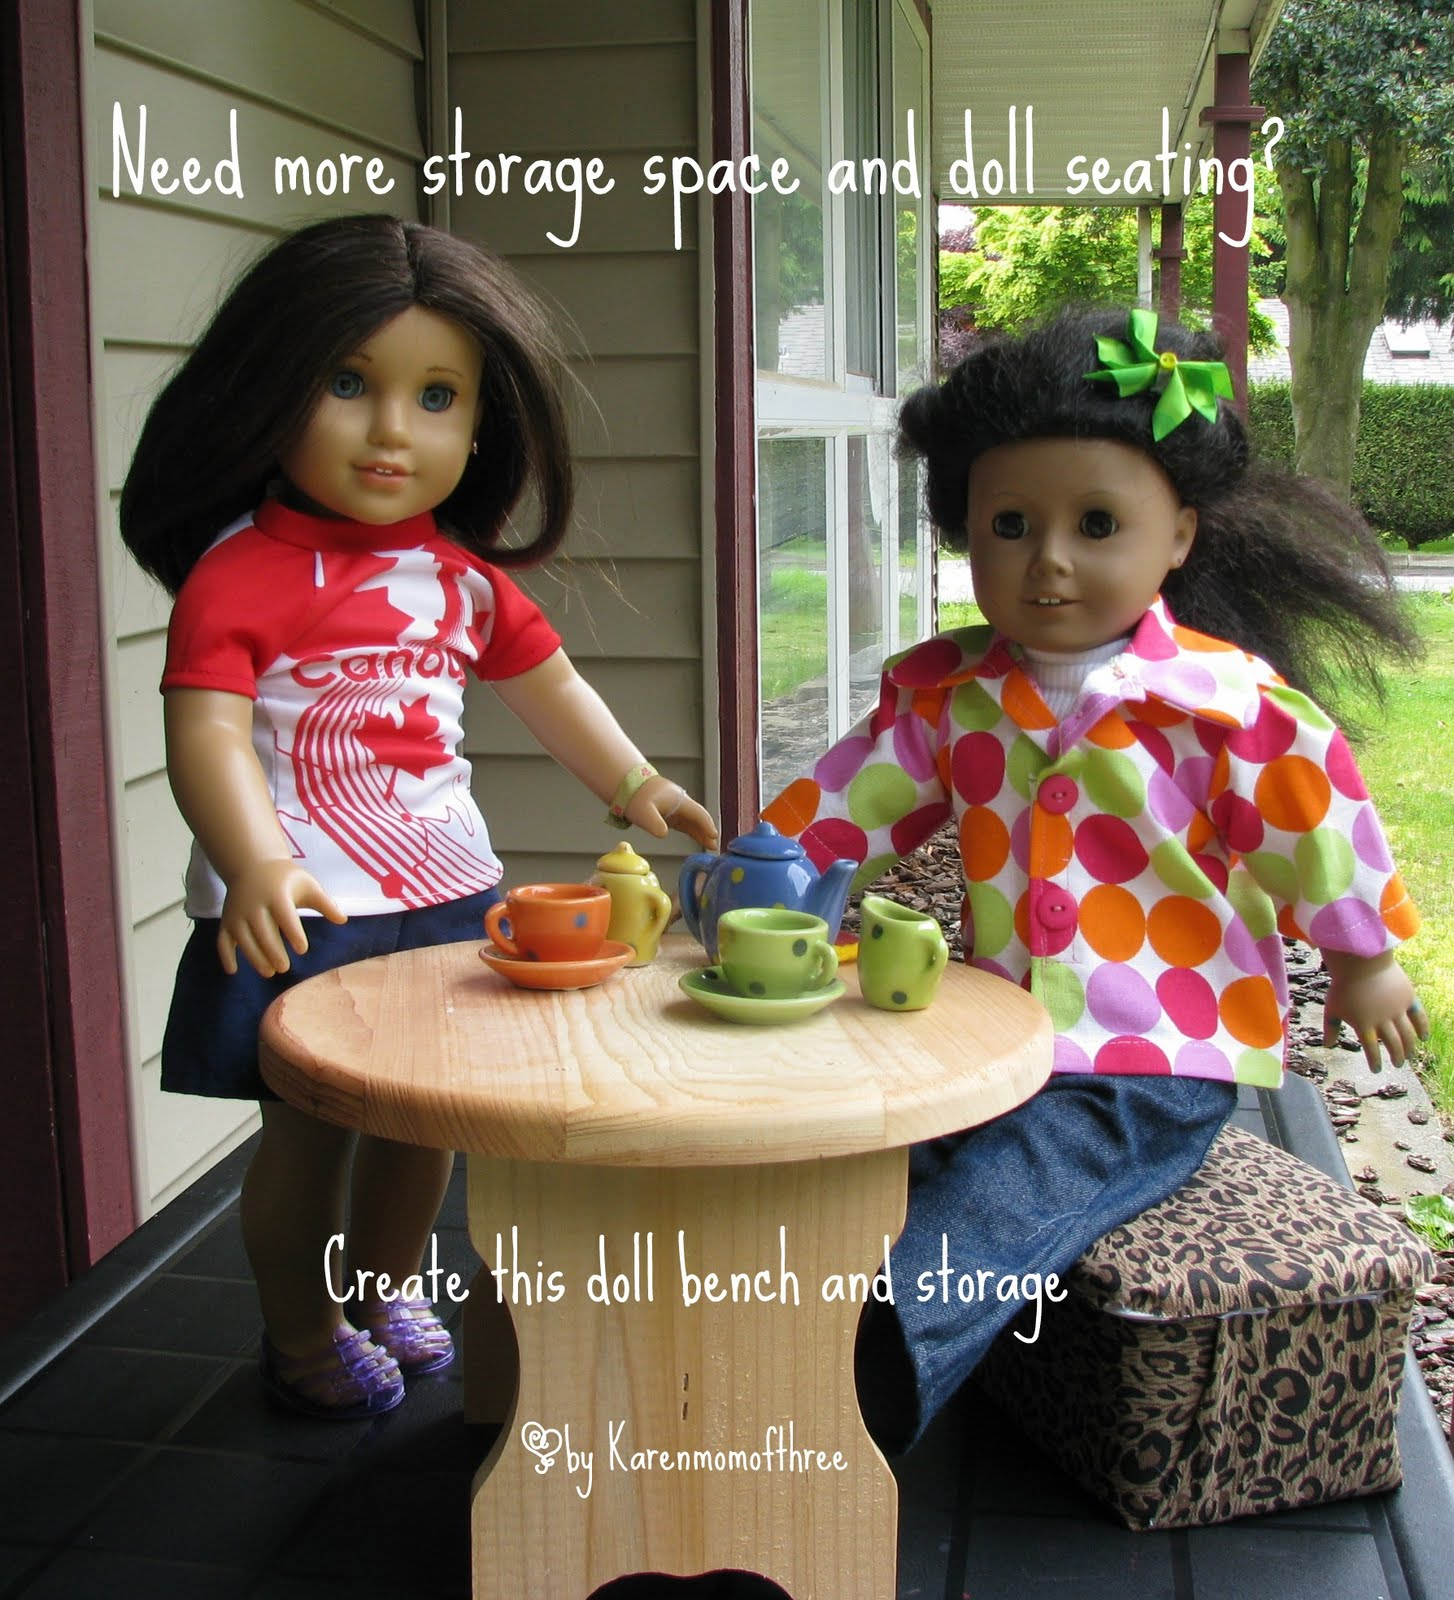 Need More Doll Storage And Seating? Make This Out Of A Diaper Wipe Container !